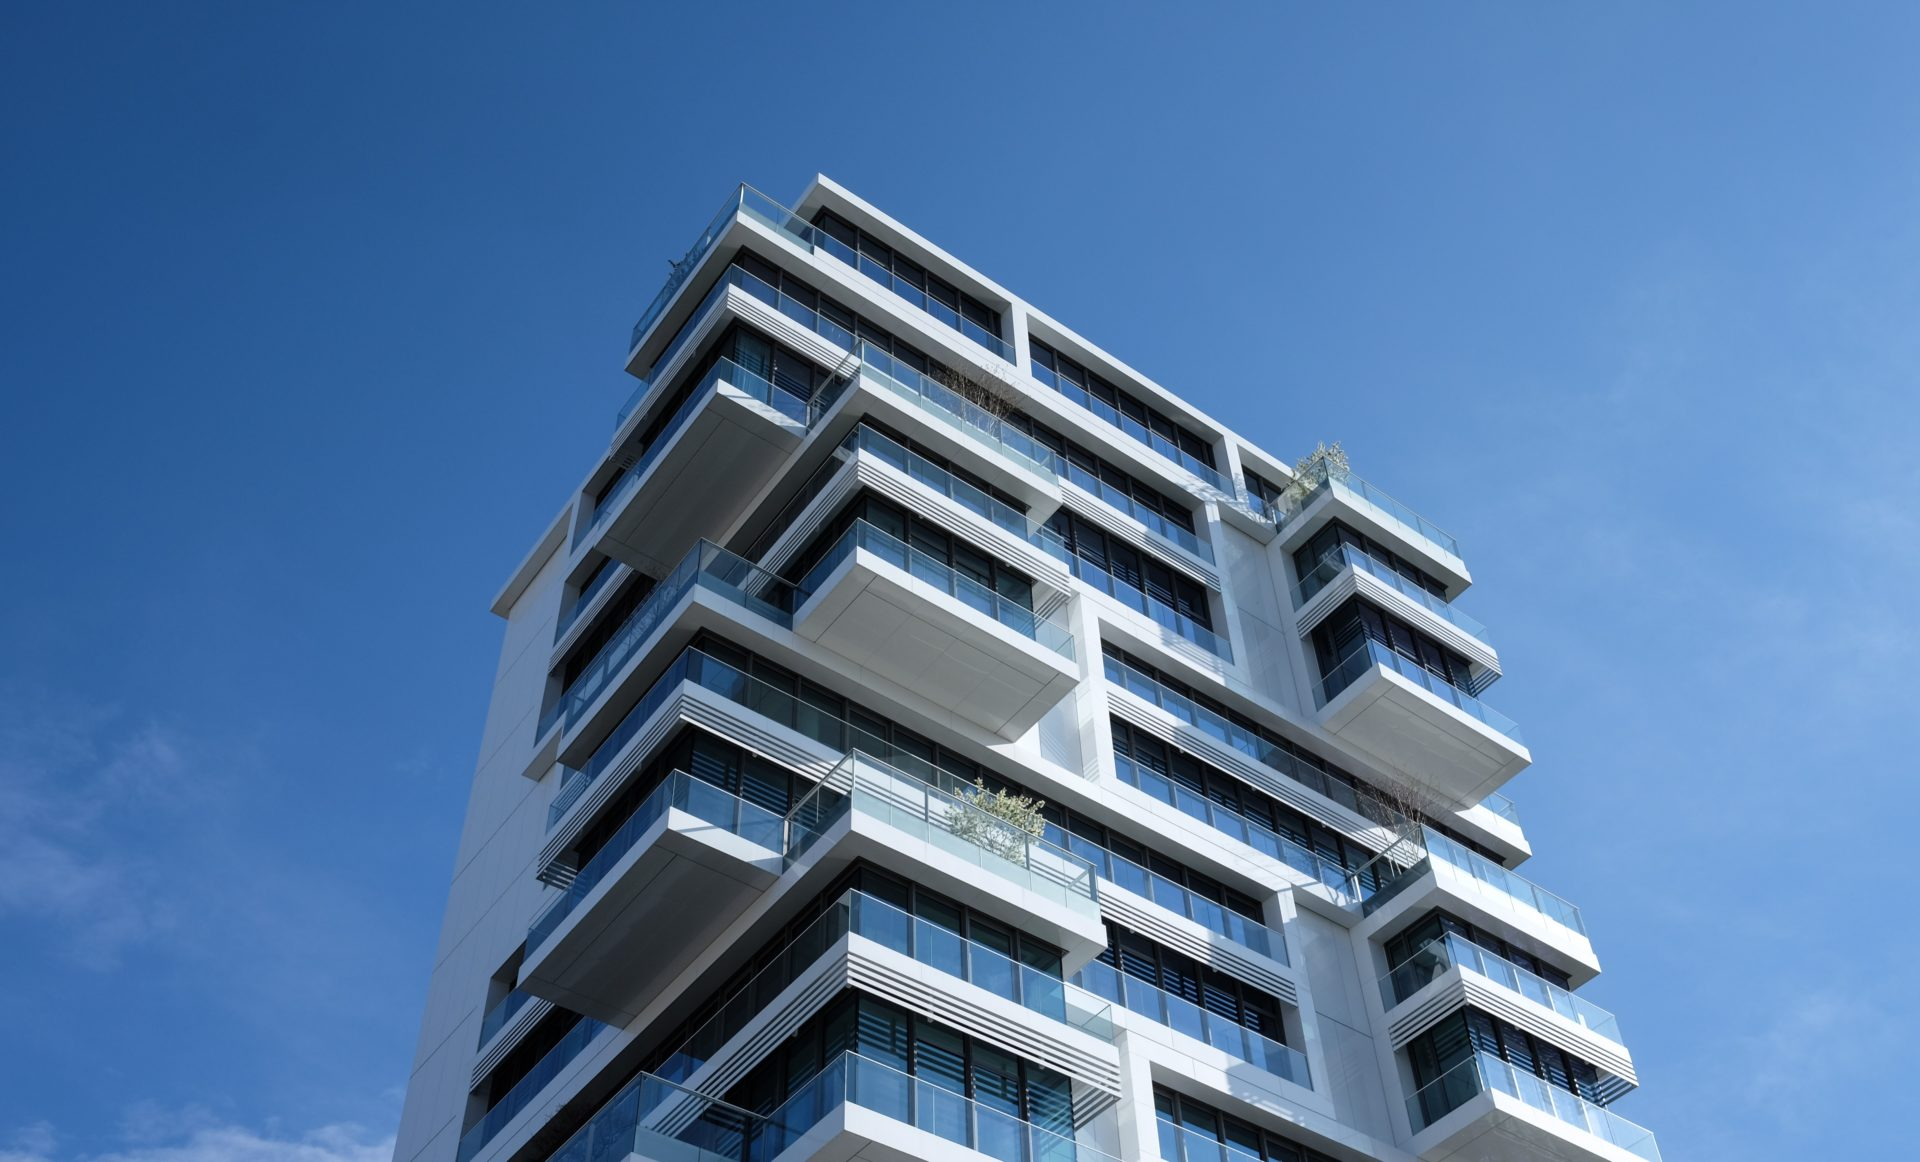 House Vs. Condo: Which Is The Better Investment?